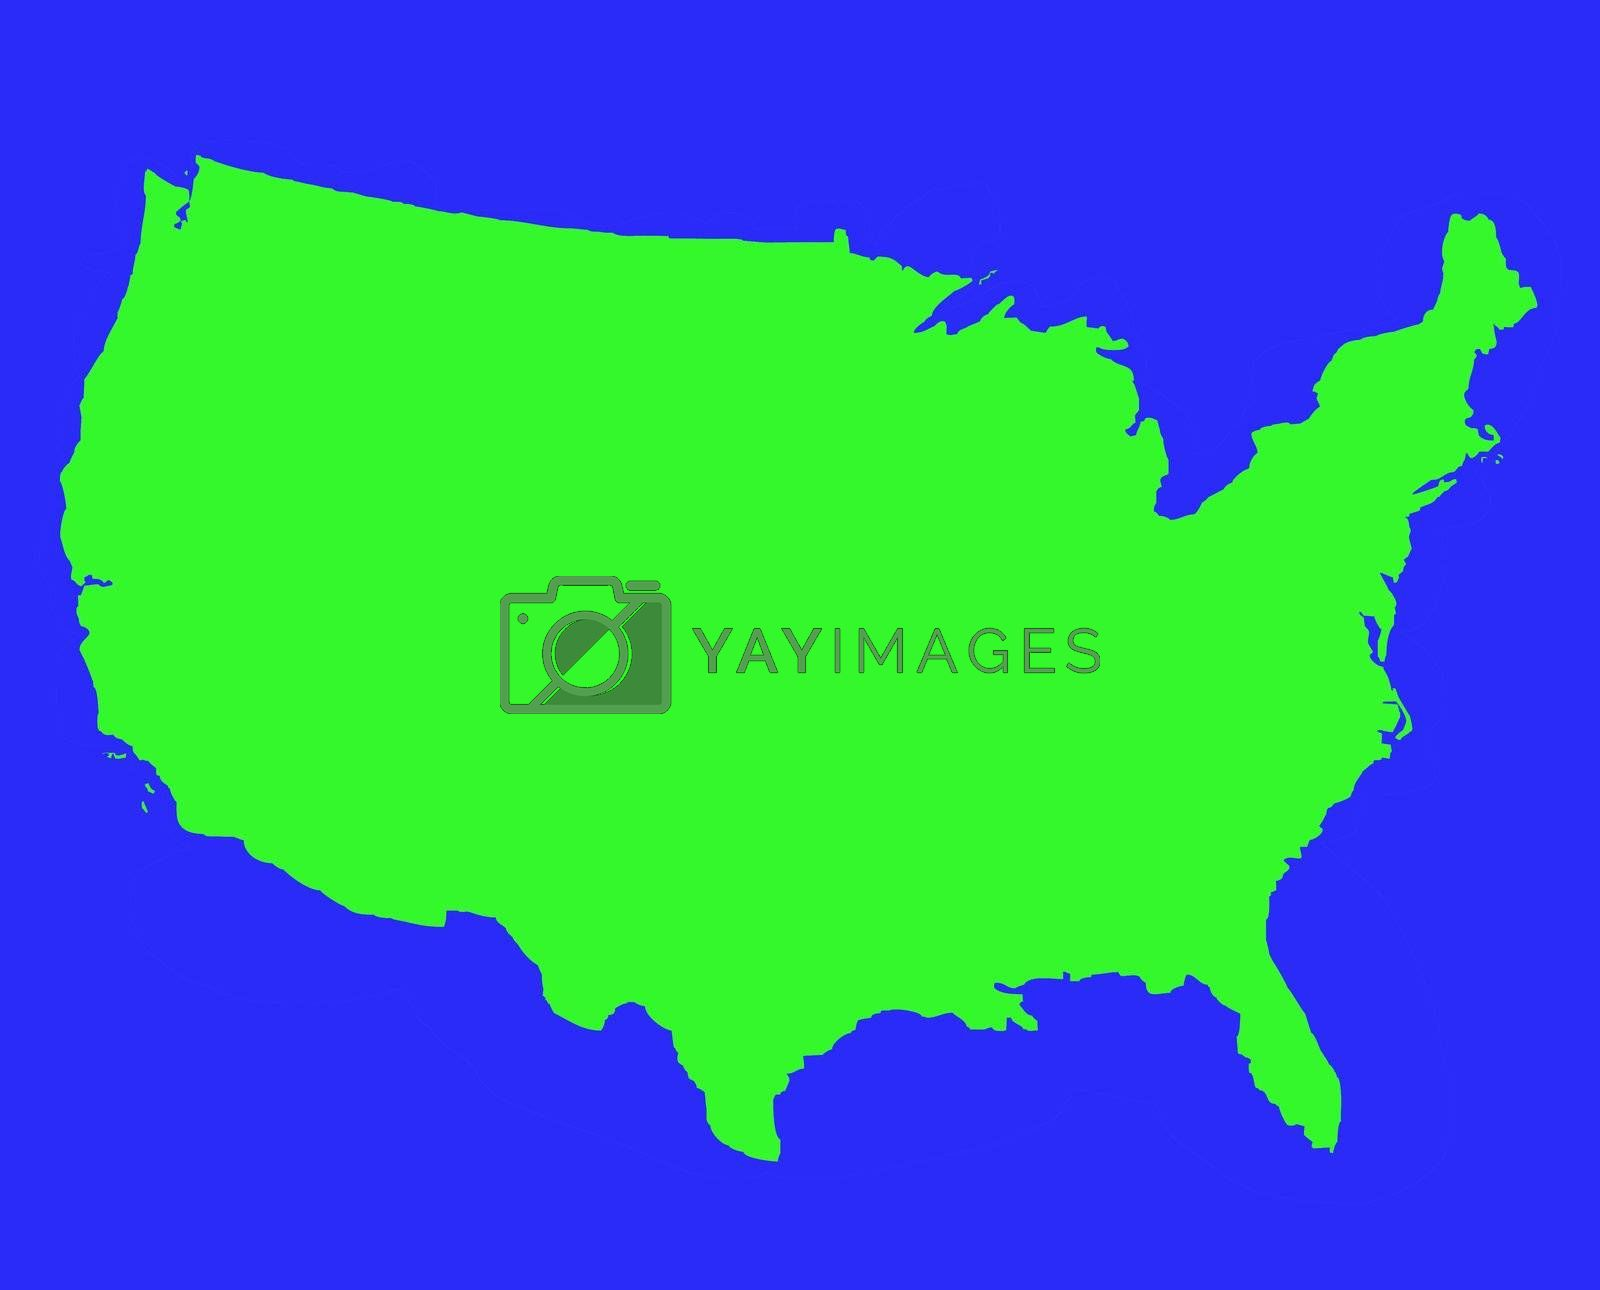 United States of America outline map by speedfighter